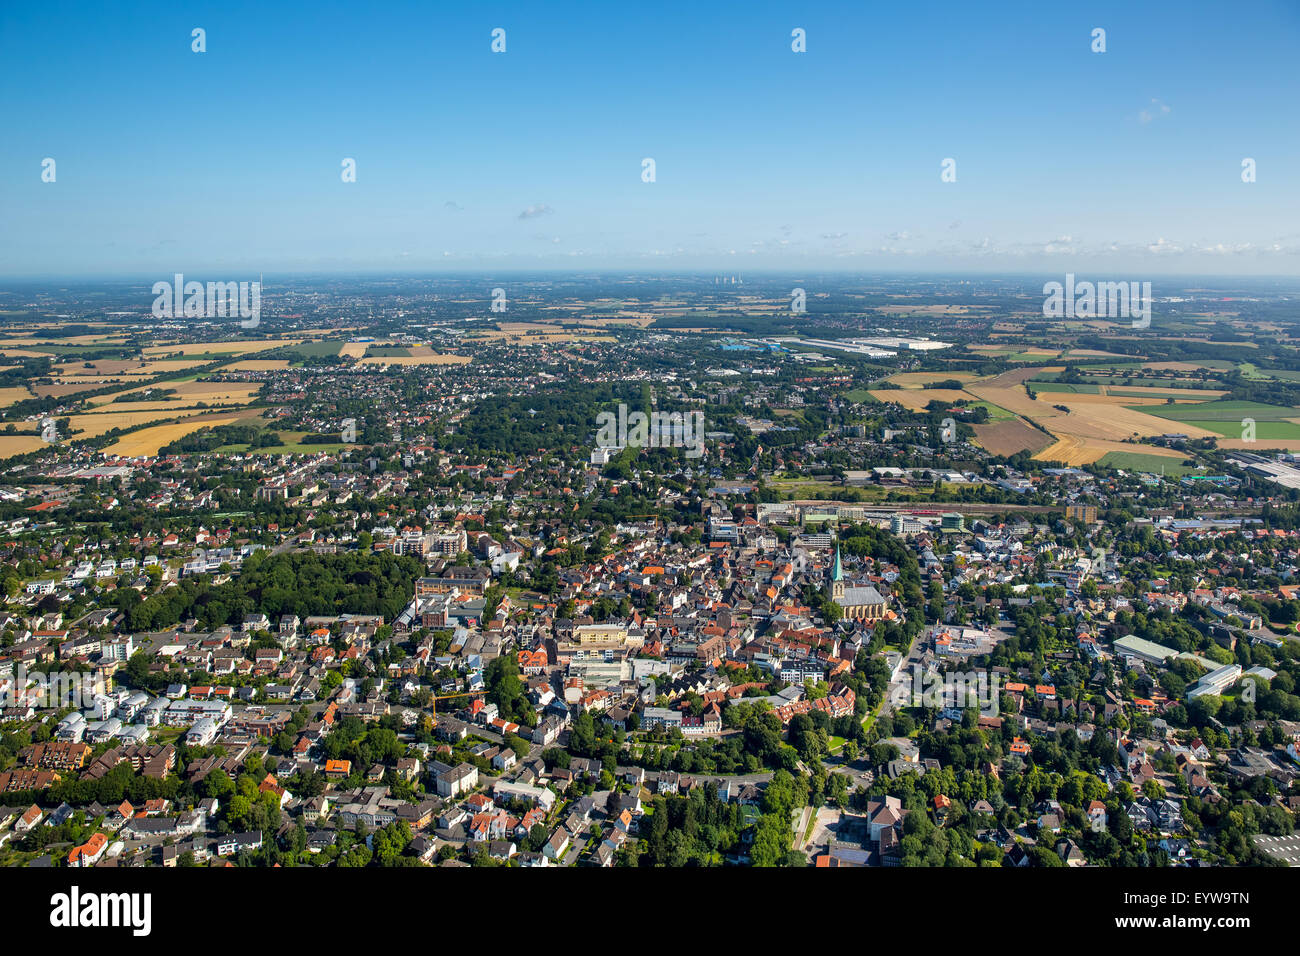 View from the south to the city center of Unna, Ruhr district, North Rhine-Westphalia, Germany - Stock Image